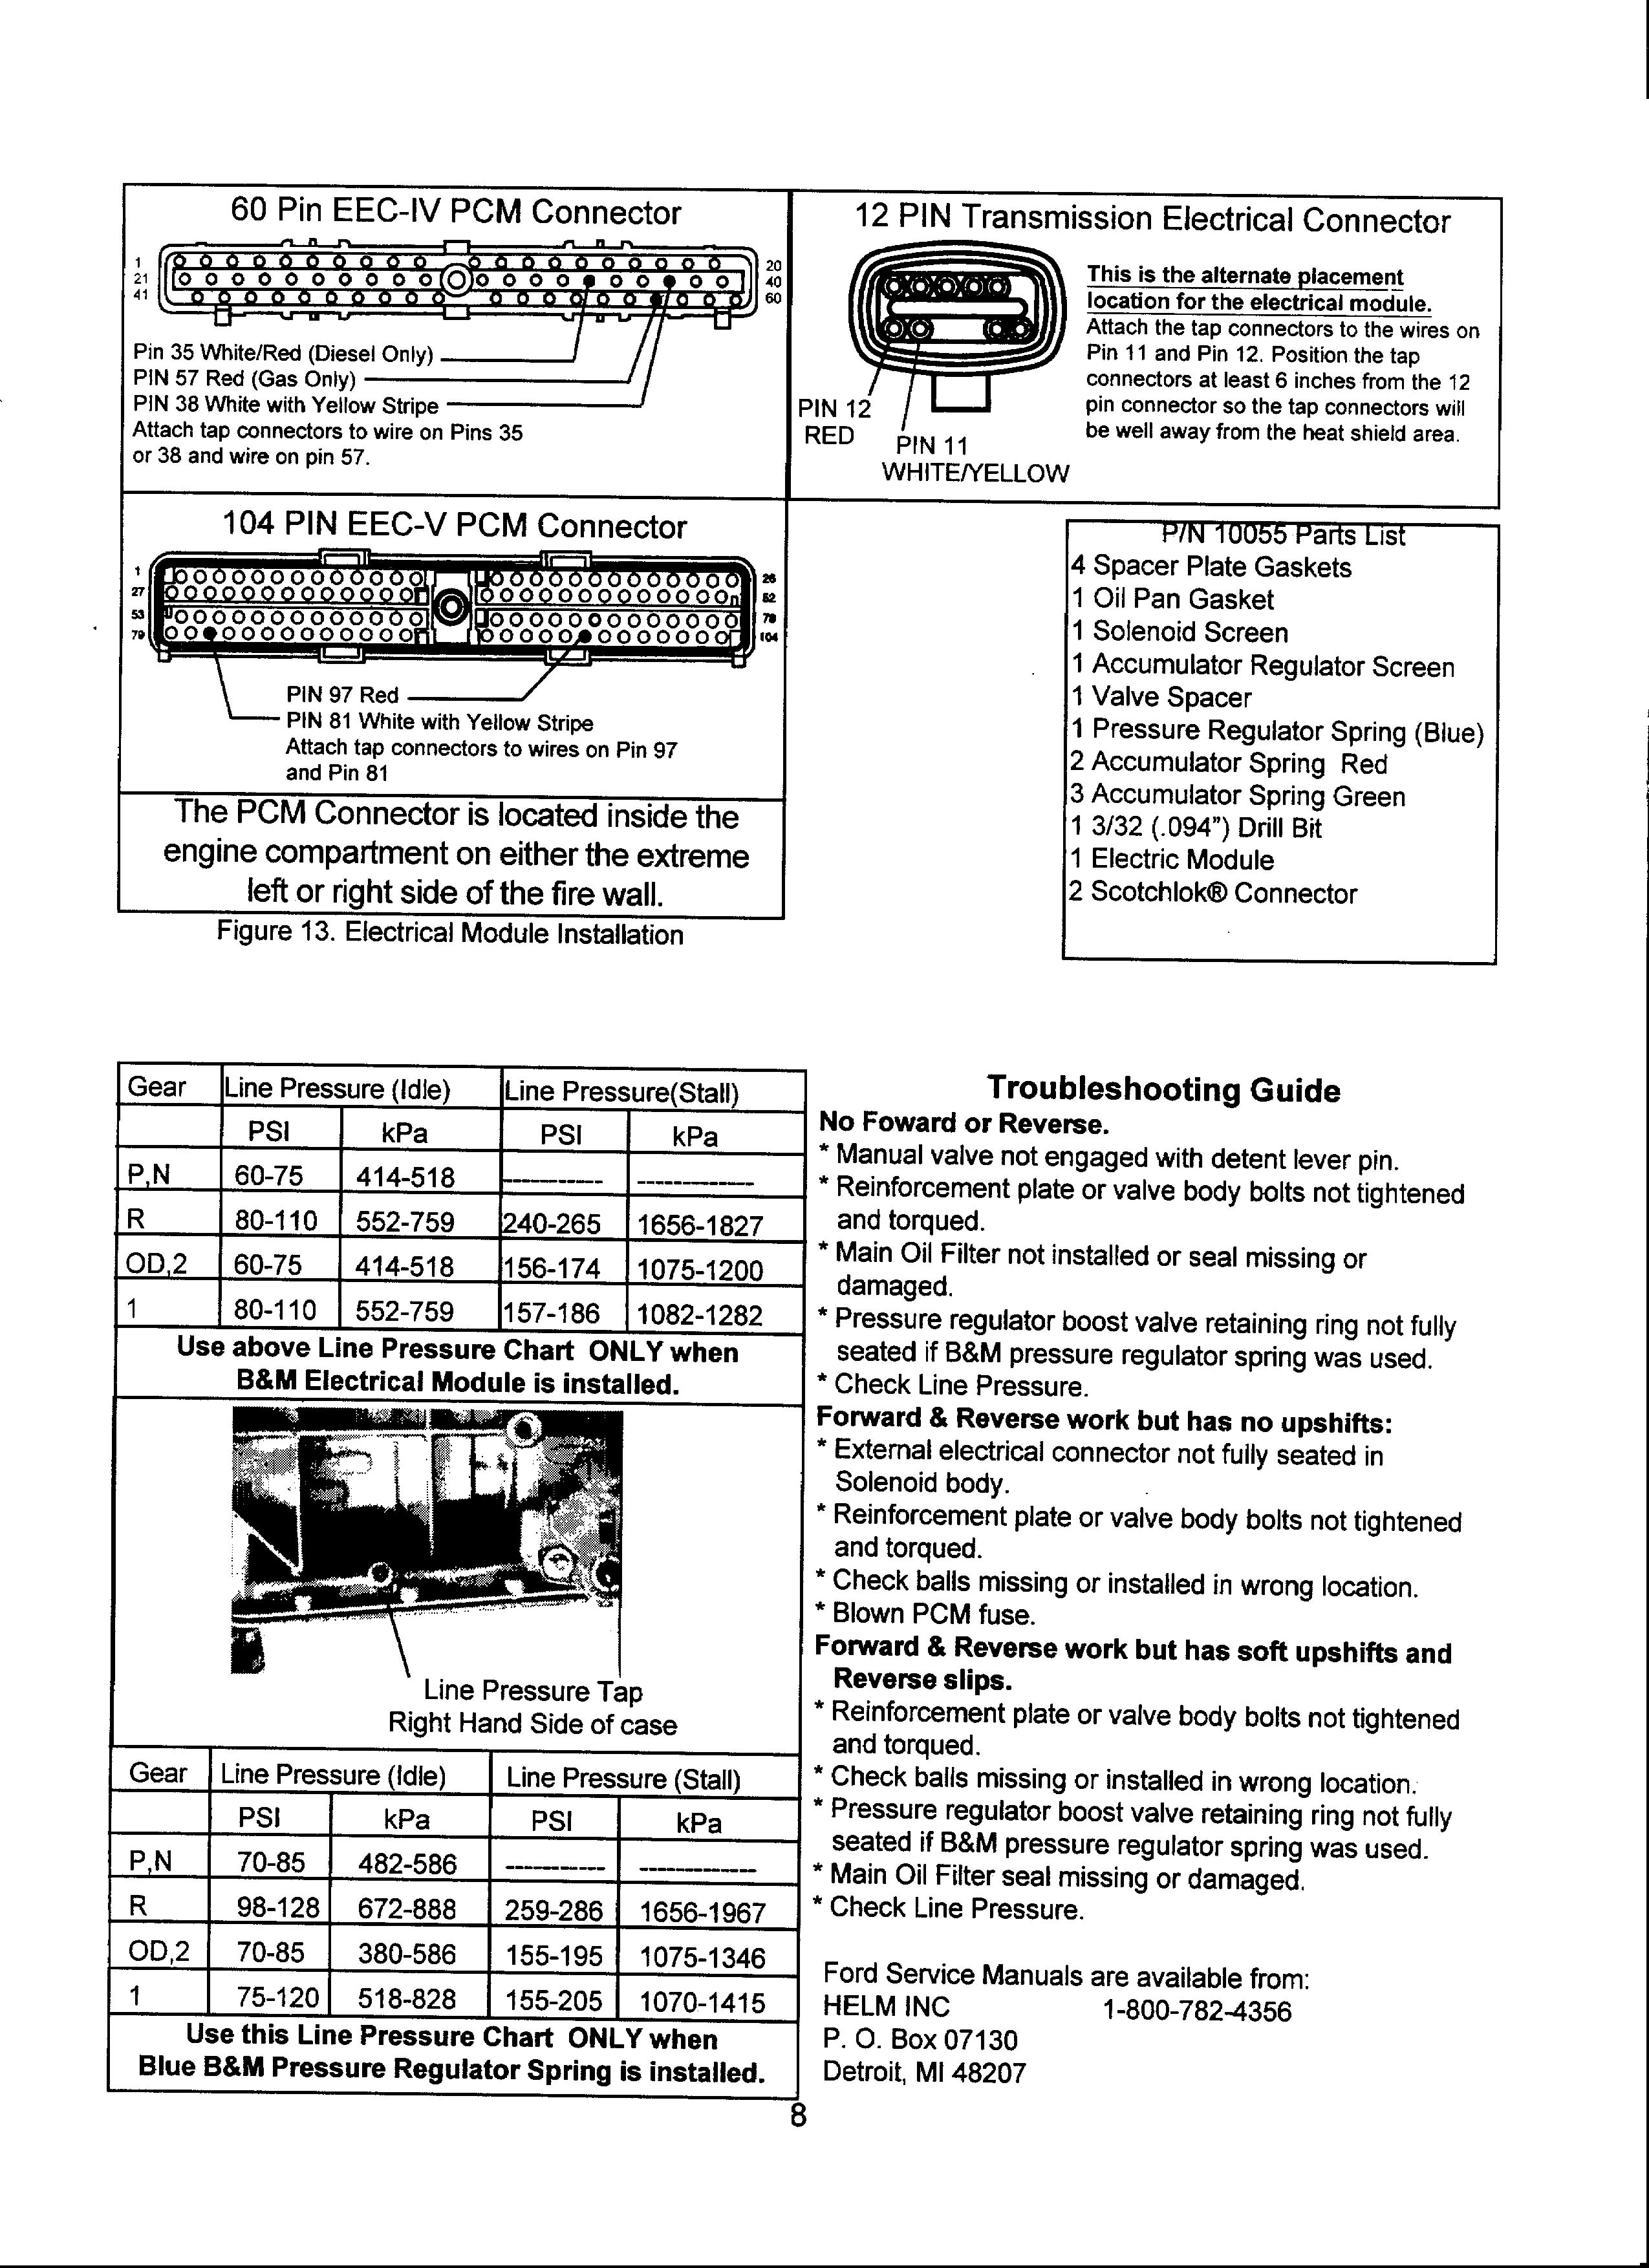 1996 Transmission Epc Wire Ford Bronco Forum Eec V Wiring Diagram Someone Posted A Of The Connection Bm Module I May Connect It There